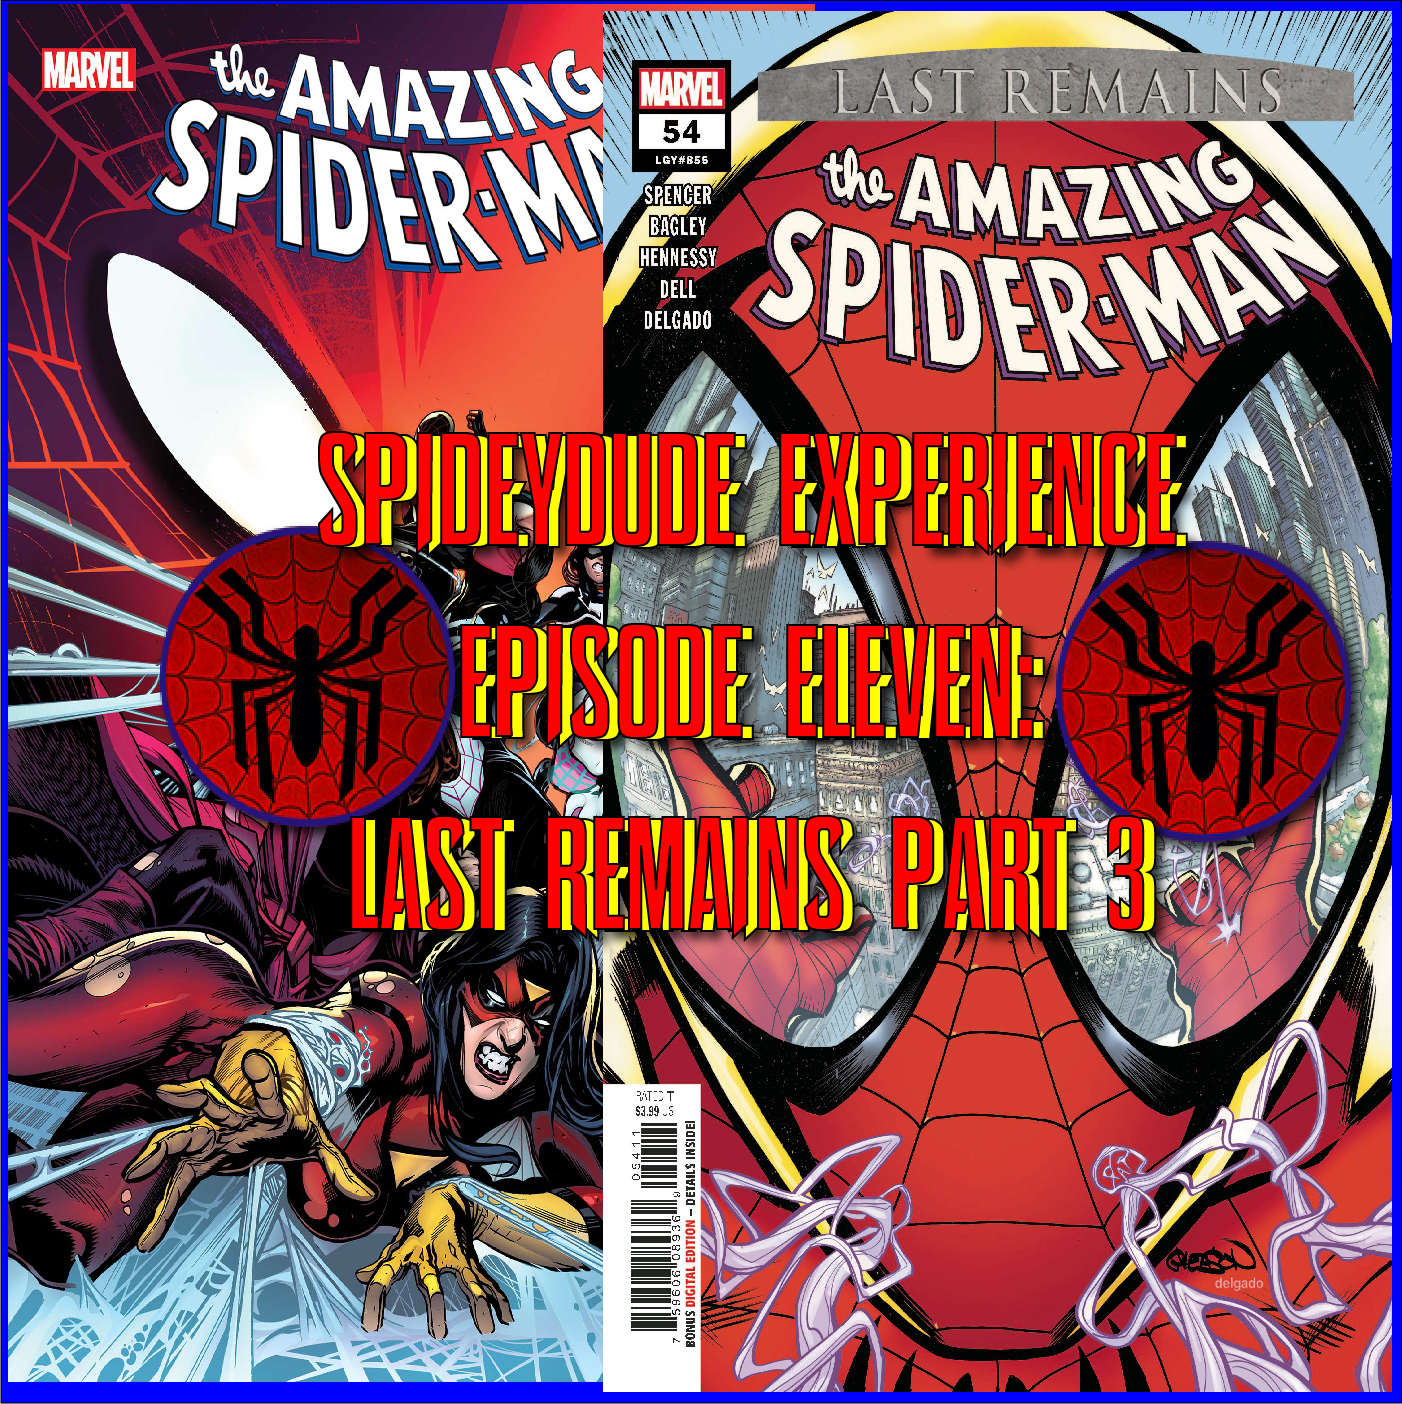 Spideydude Experience Episode 11: Last Remains Part 3